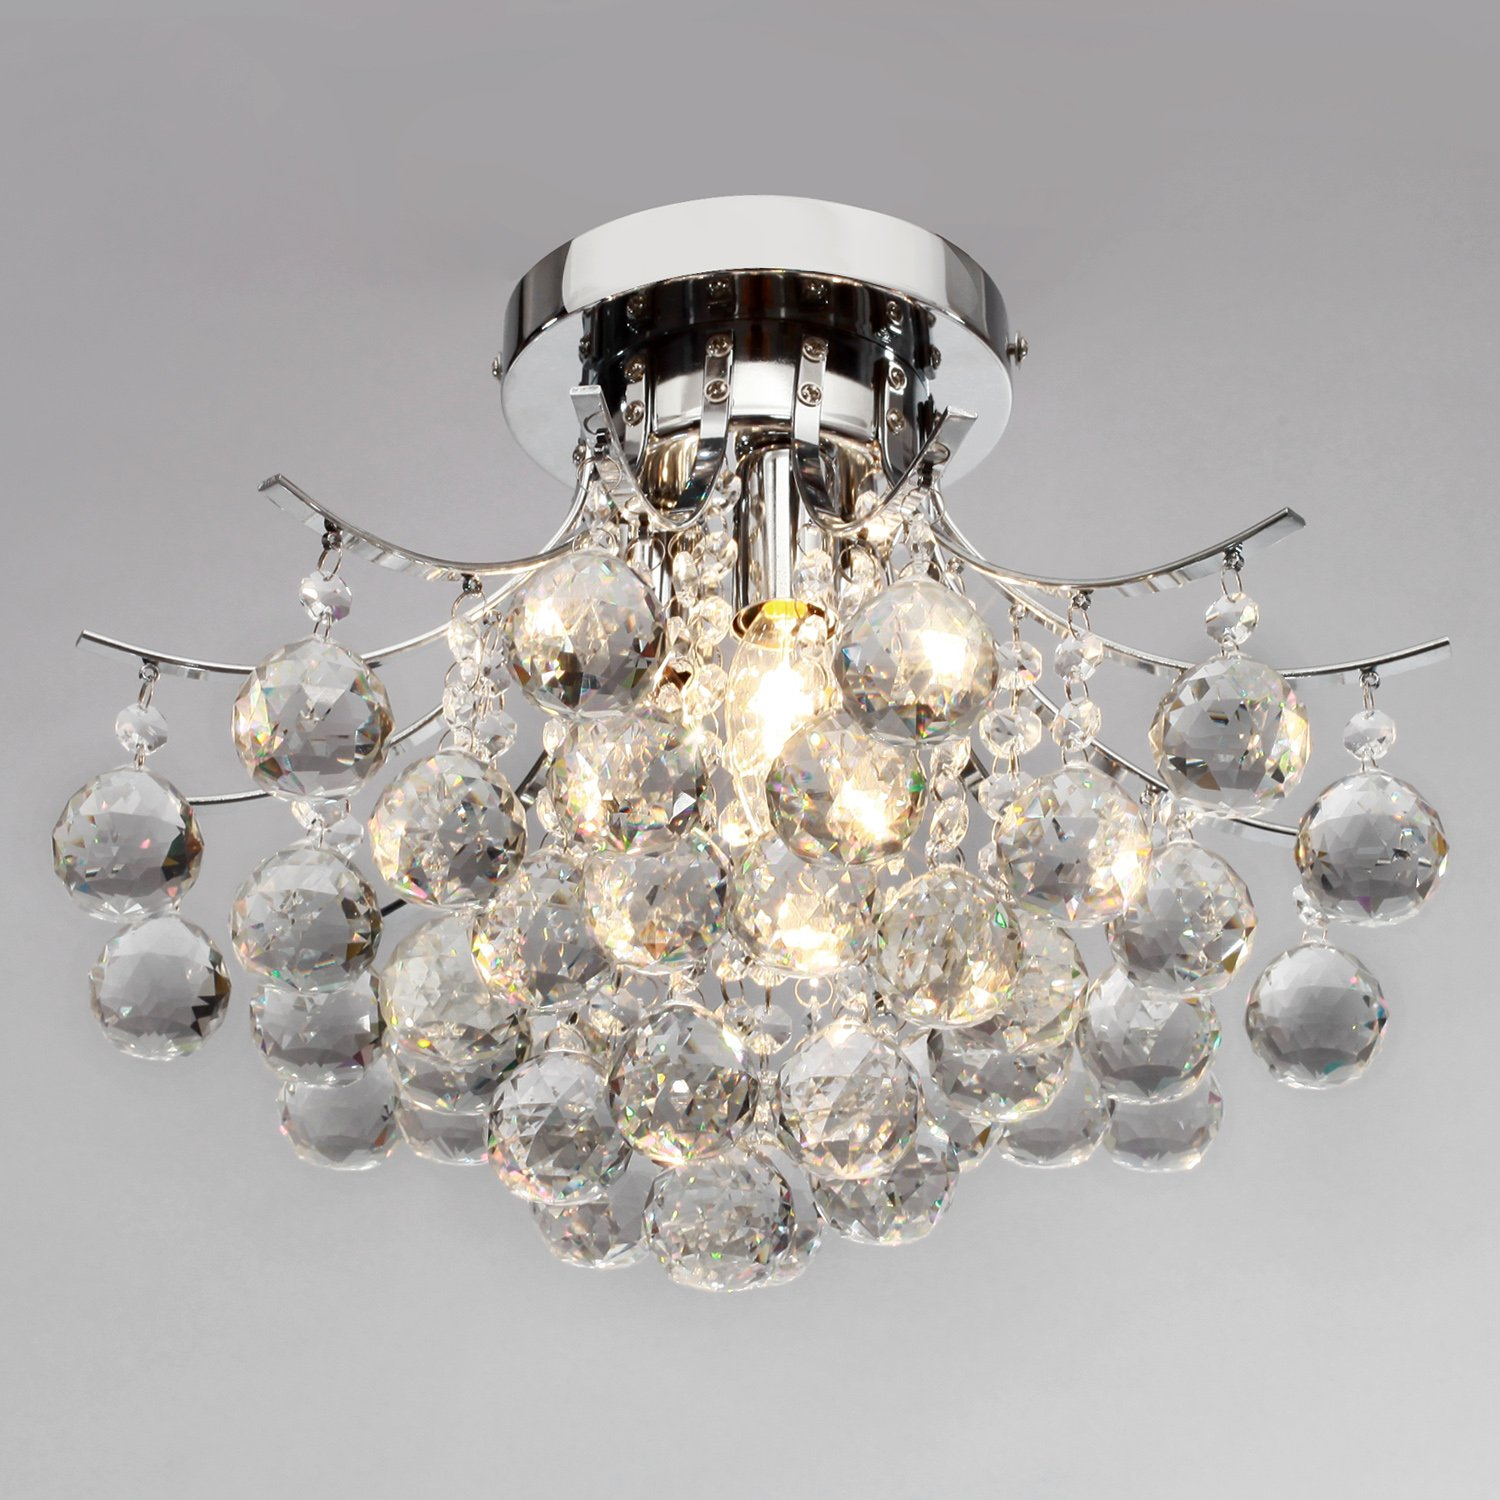 light bulb does chandelier questions amps on home dimmer affect project wiring